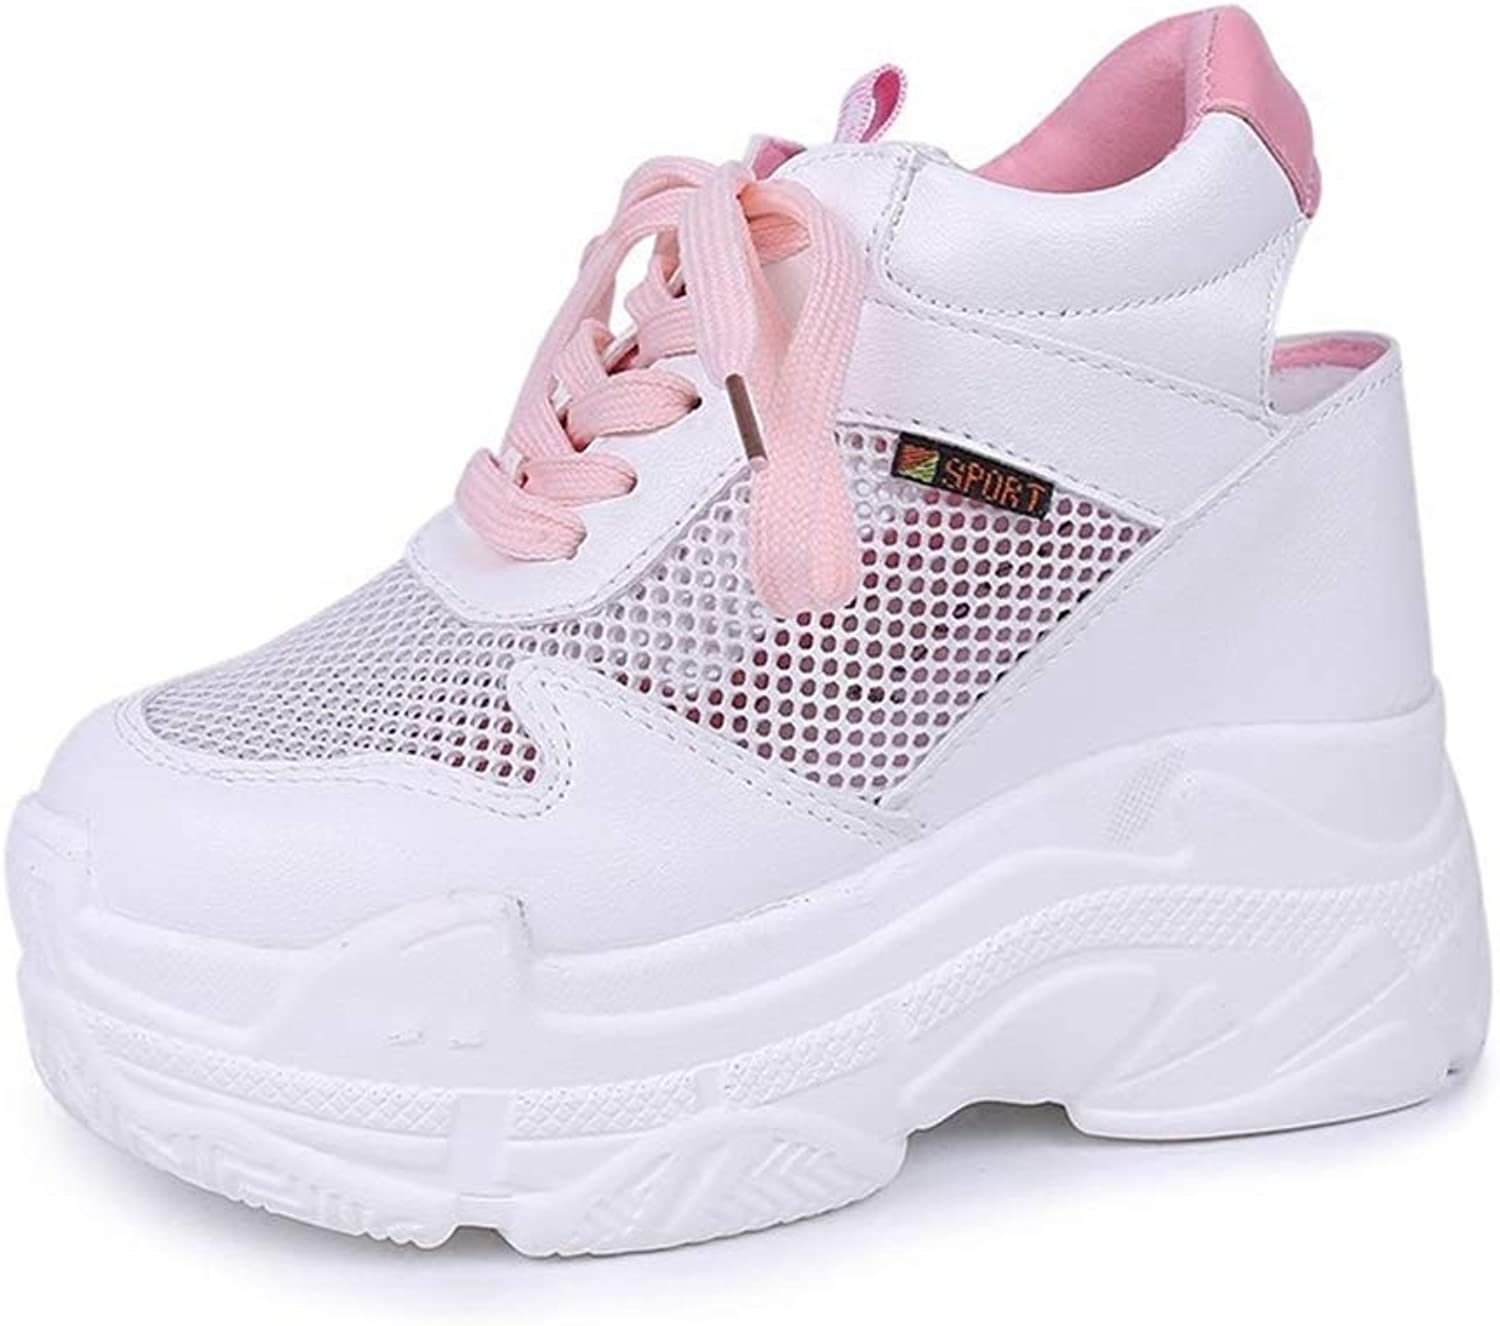 Women's Flat Casual shoes Mesh Breathable High Platform Wedge Sneakers Hollow Out Female shoes